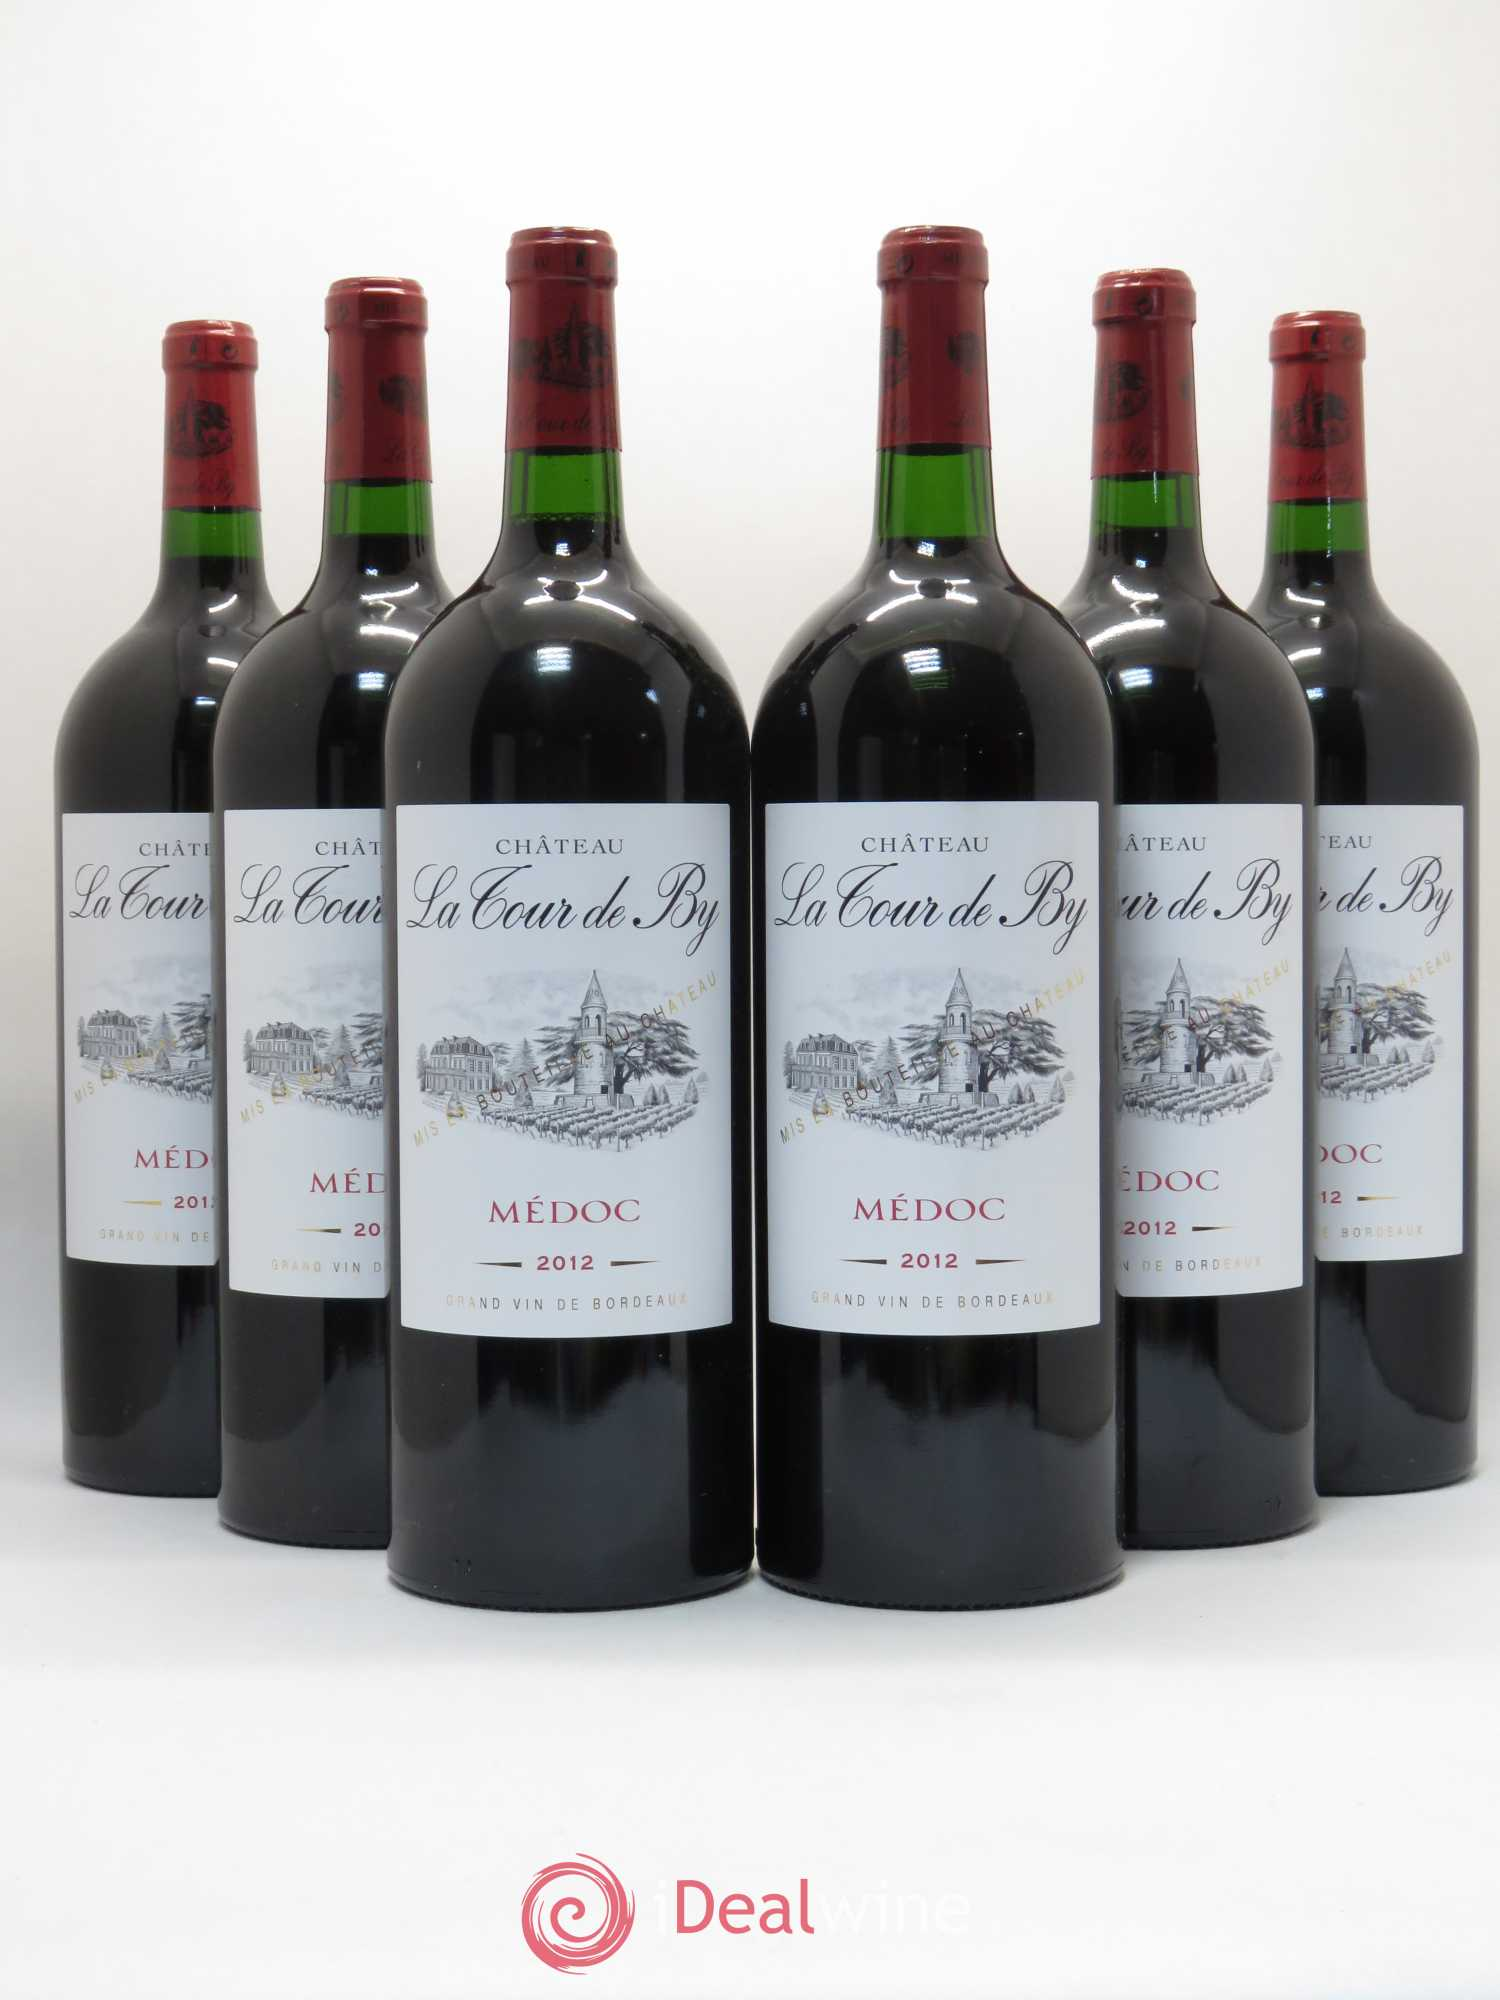 Château La Tour de By Cru Bourgeois  2012 - Lot of 6 Magnums